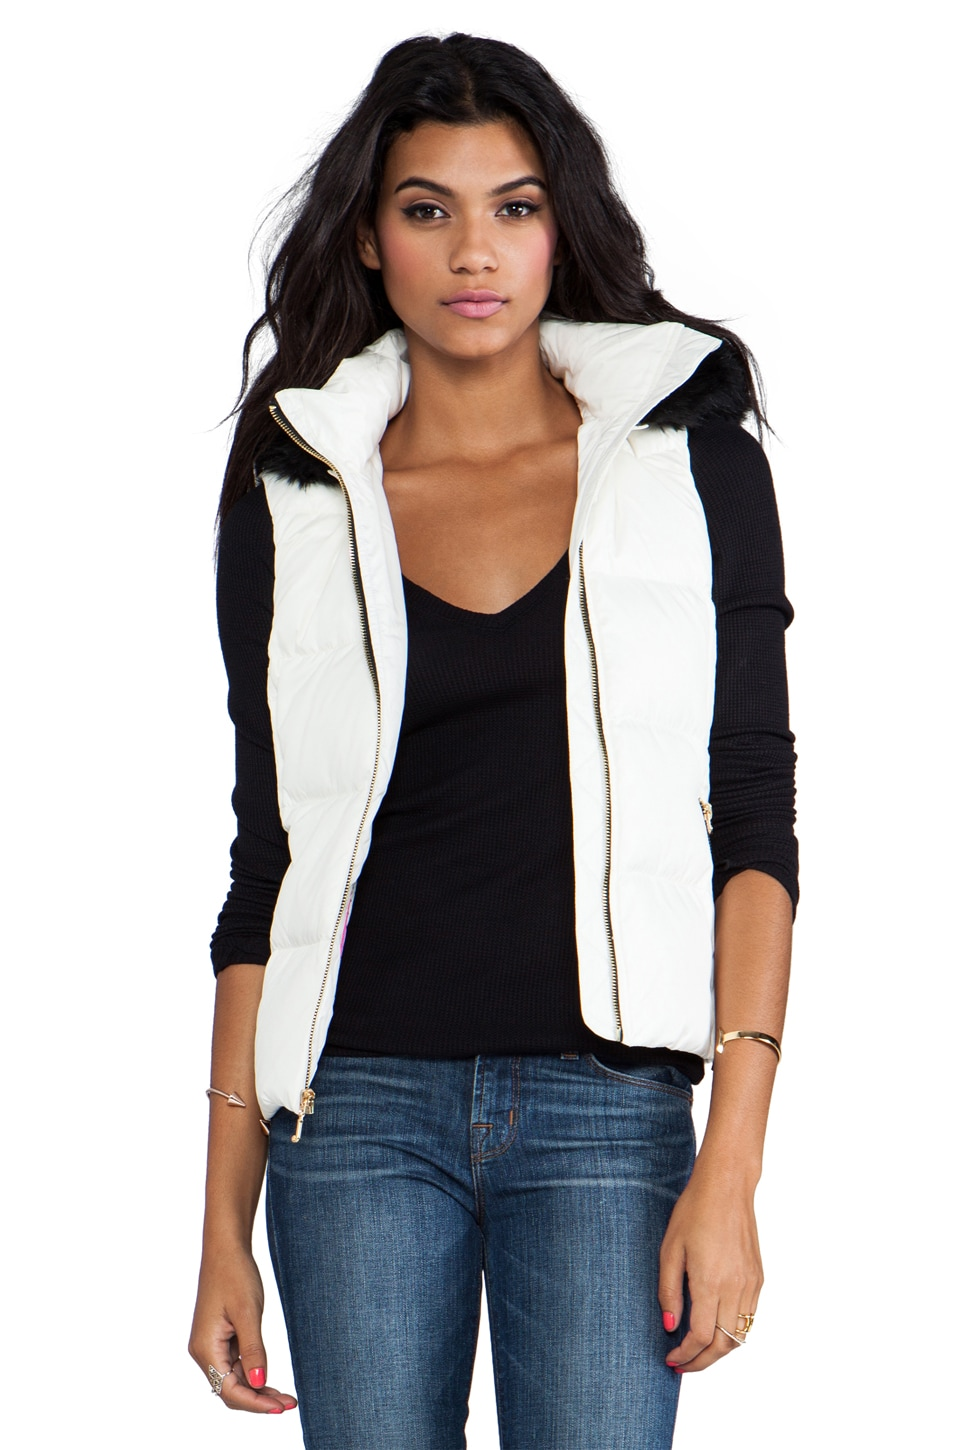 Juicy Couture Lexie Nylon Vest with Faux Fur Trim in Angel